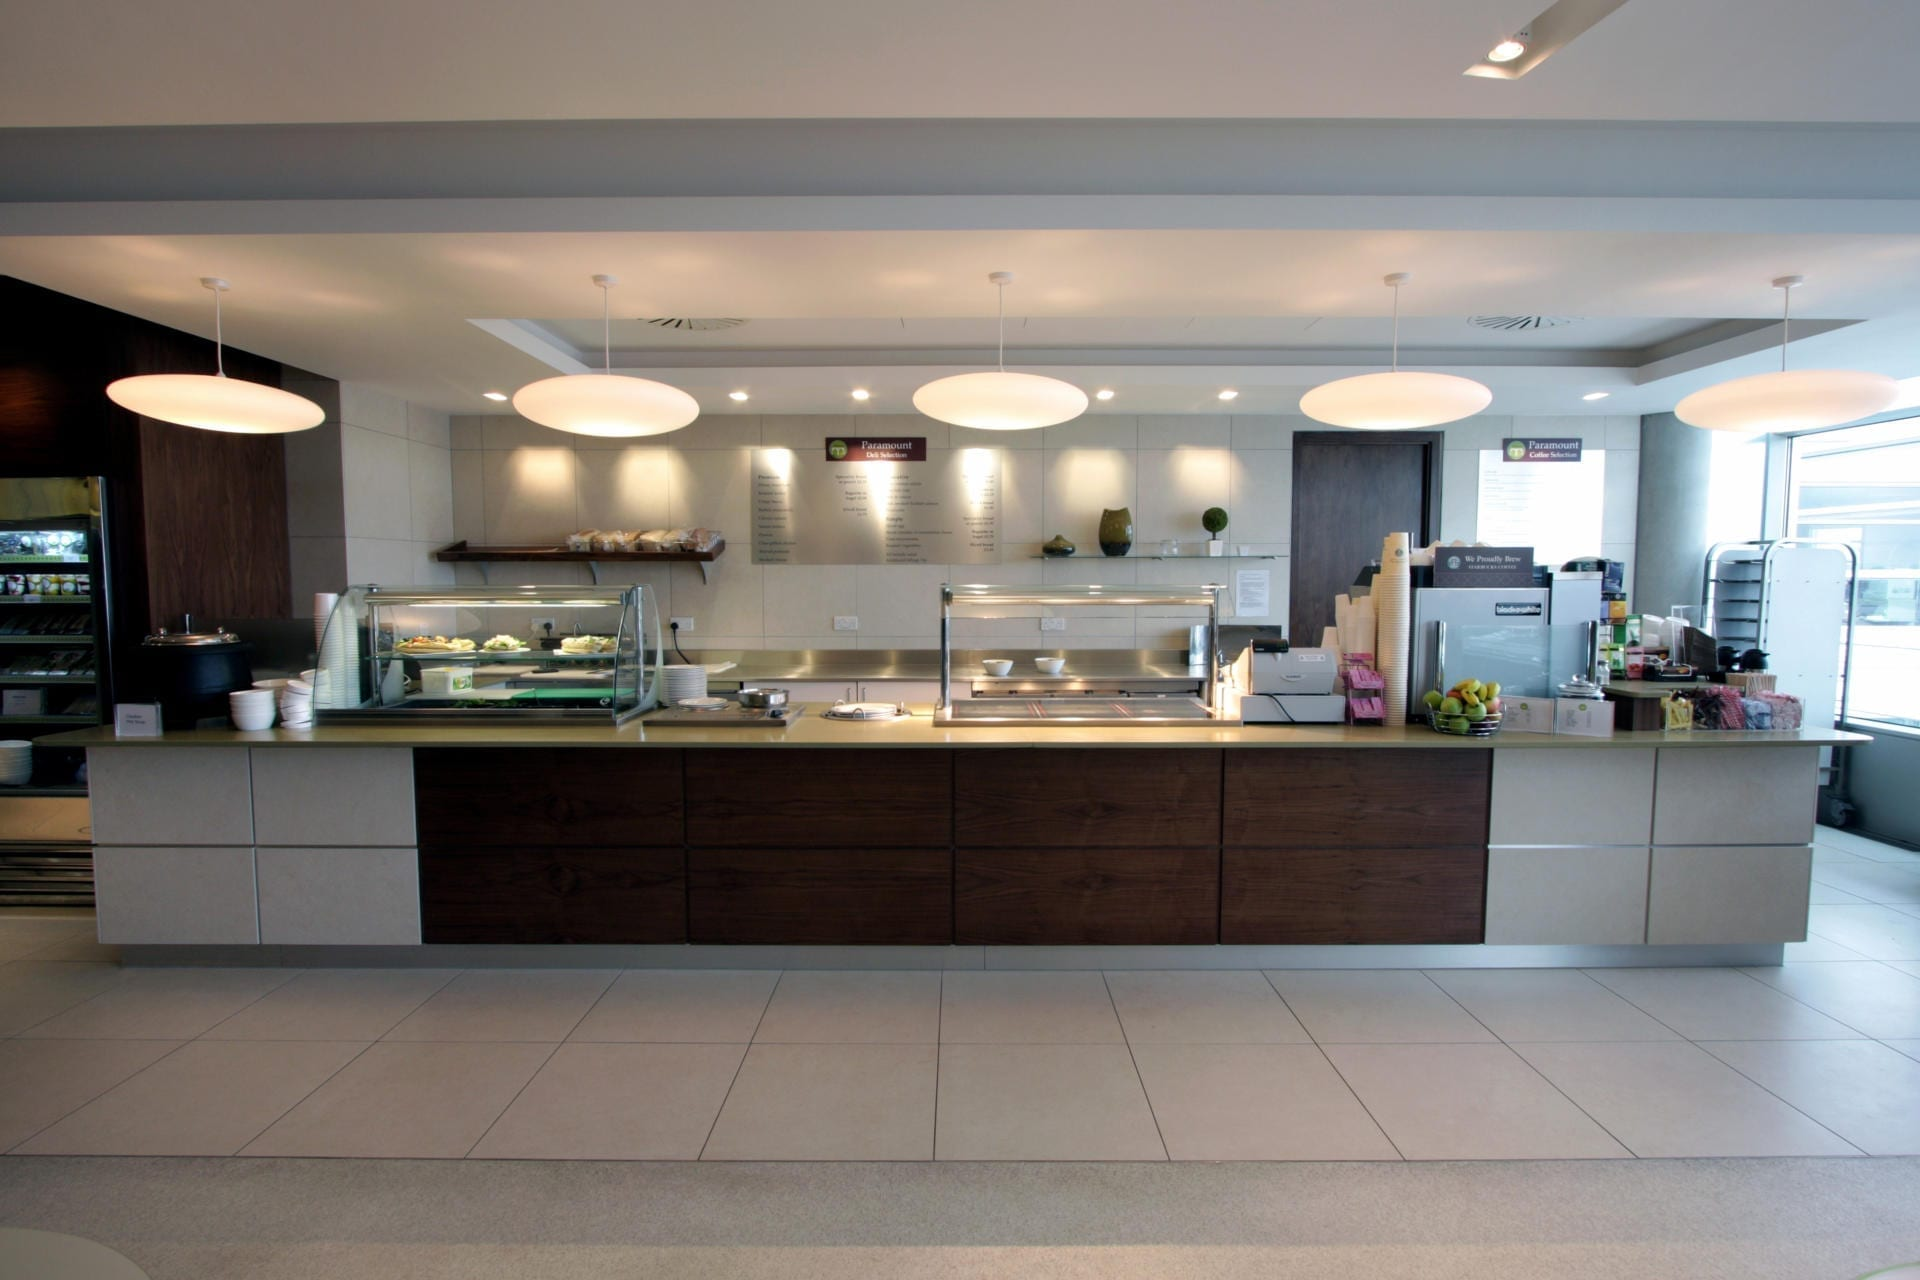 Paramount-Pictures-Charlton-House-Catering-Chiswick-Servery-Front-of-house-Servery-Food-Display-spacecatering_4